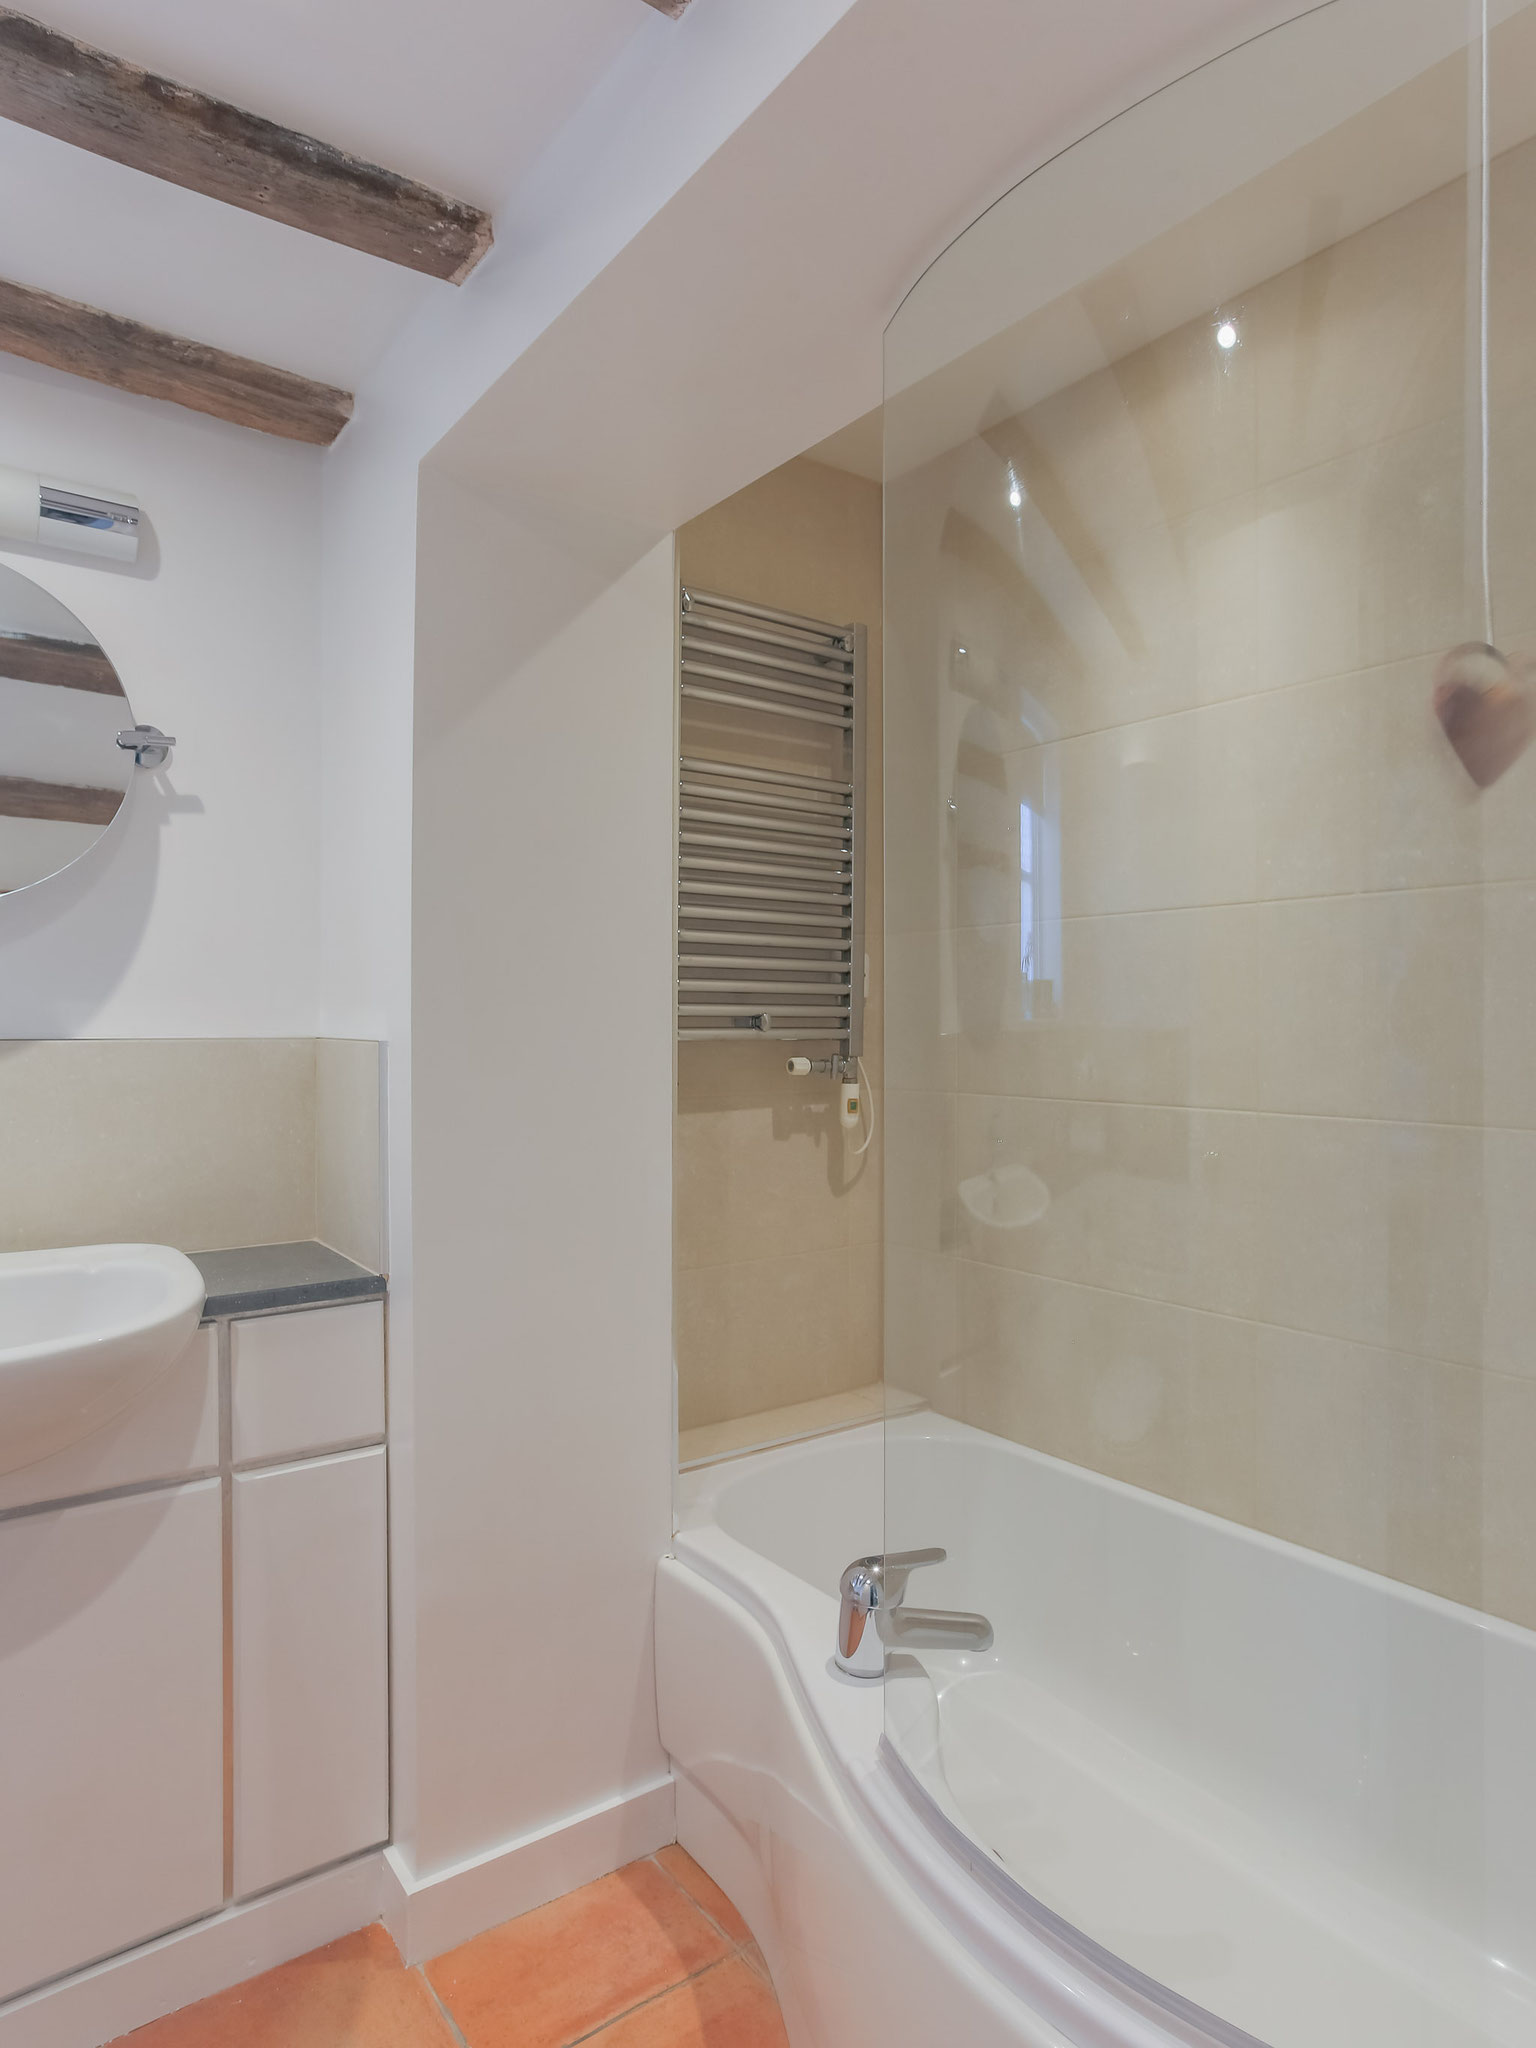 The bath with shower overhead